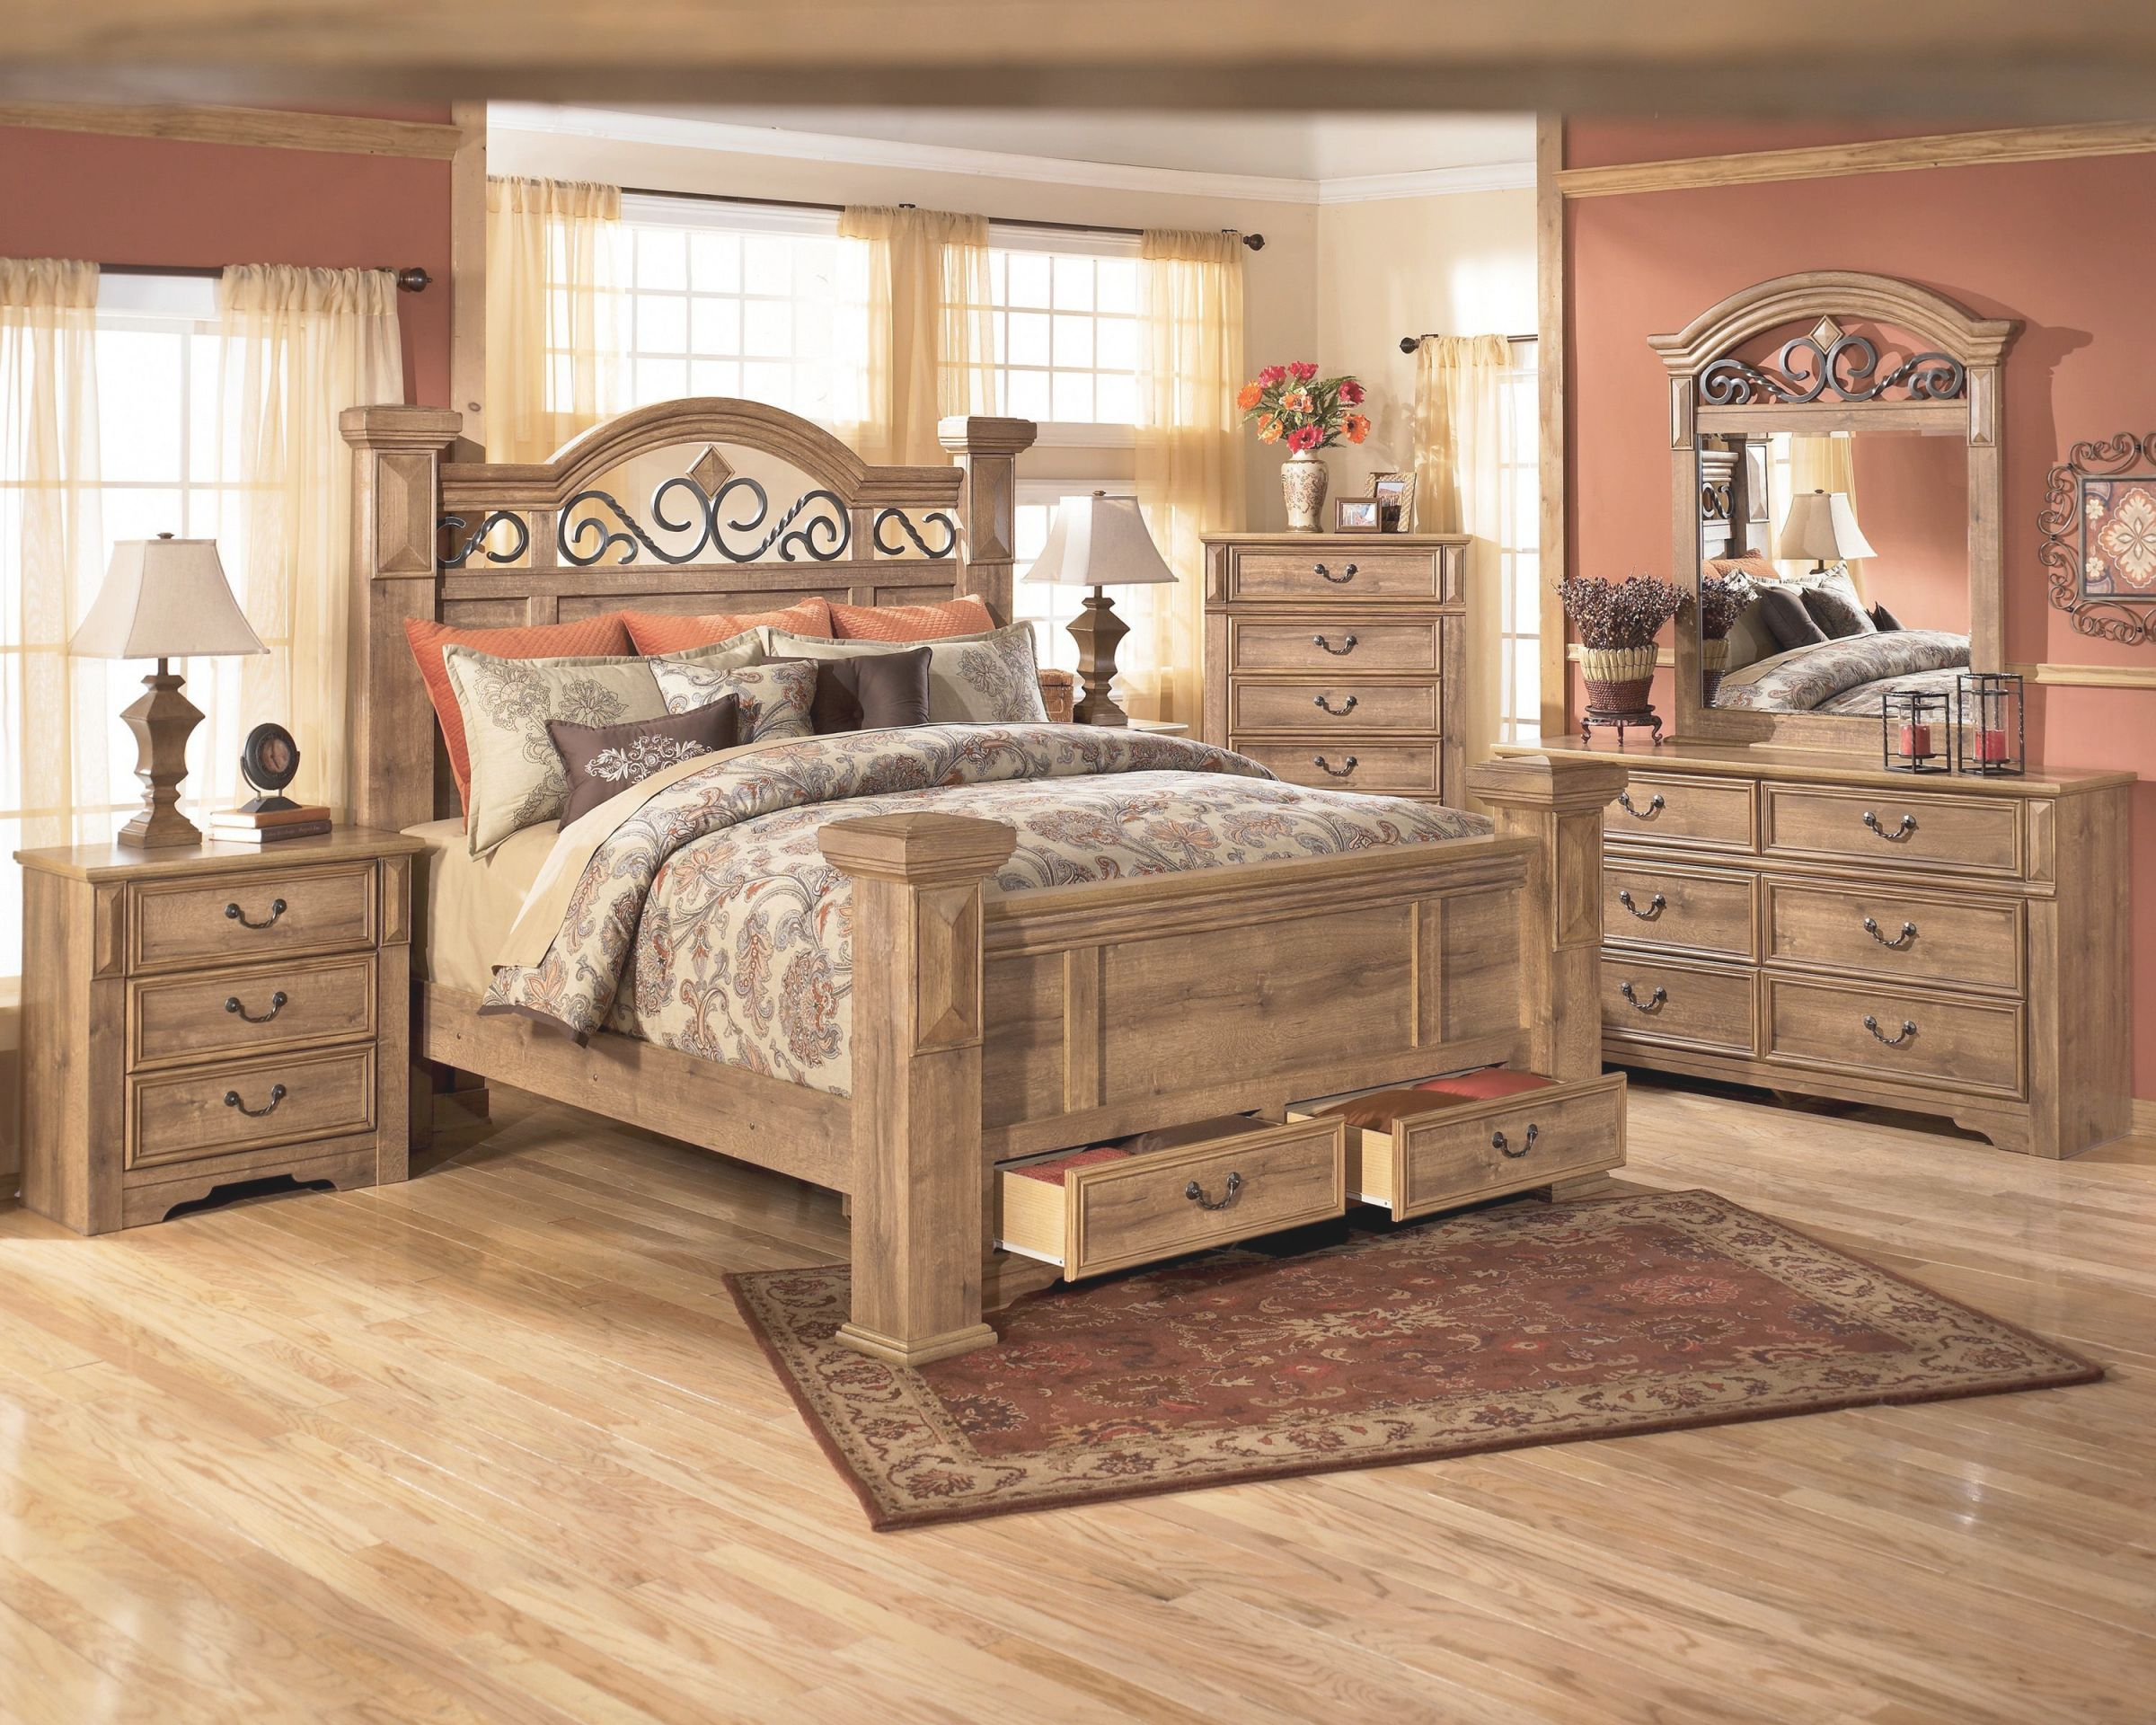 Unique Rustic Bedroom Furniture Sets Awesome Decors